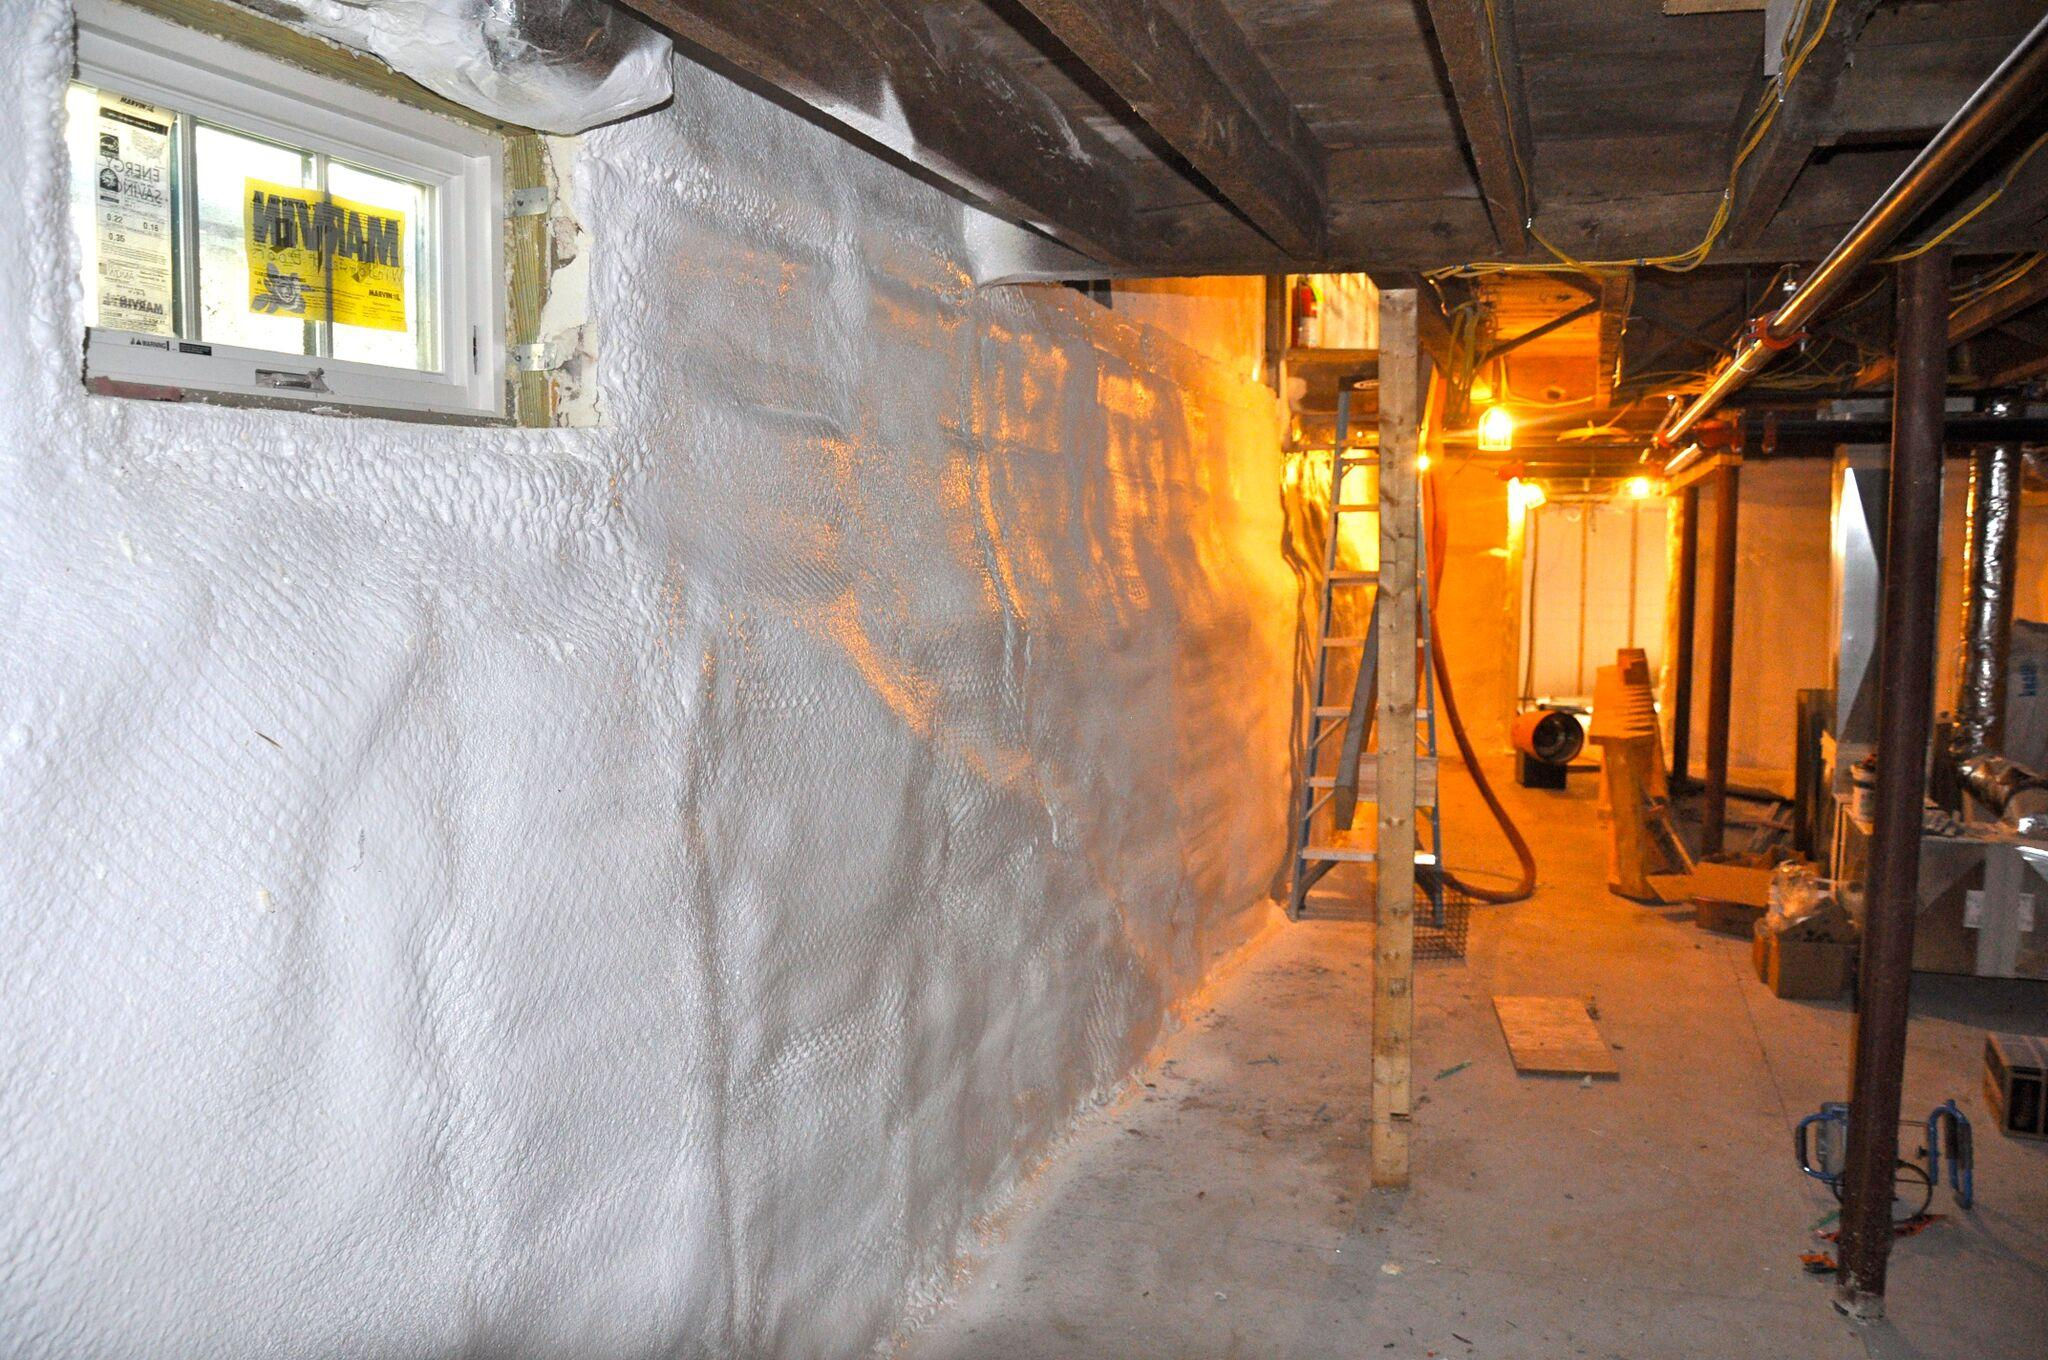 basement insulation is important in pennsylvania